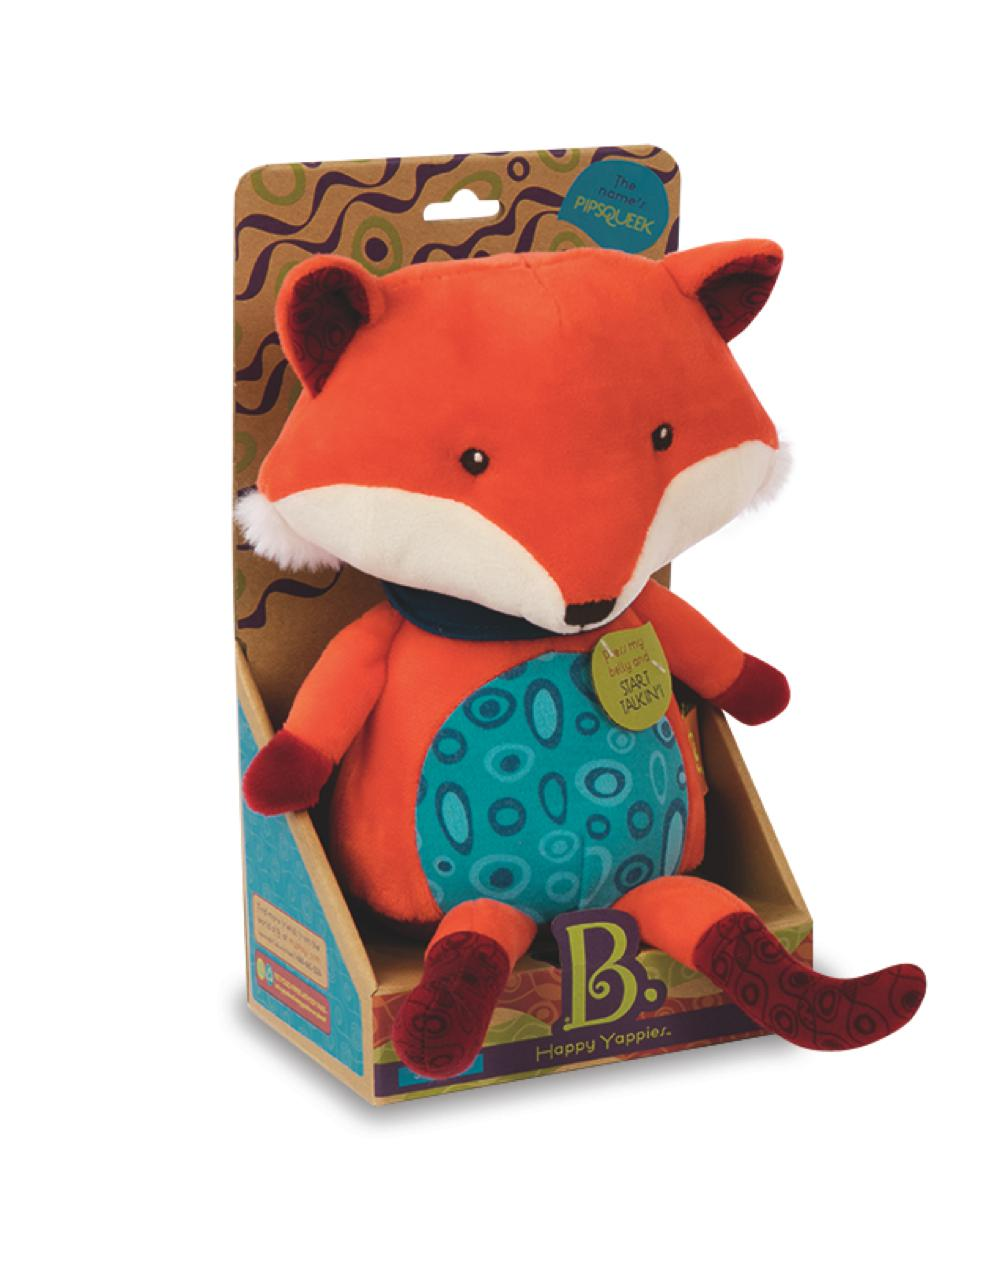 B.Lively - Happy Yappies Pipsqueak the Fox